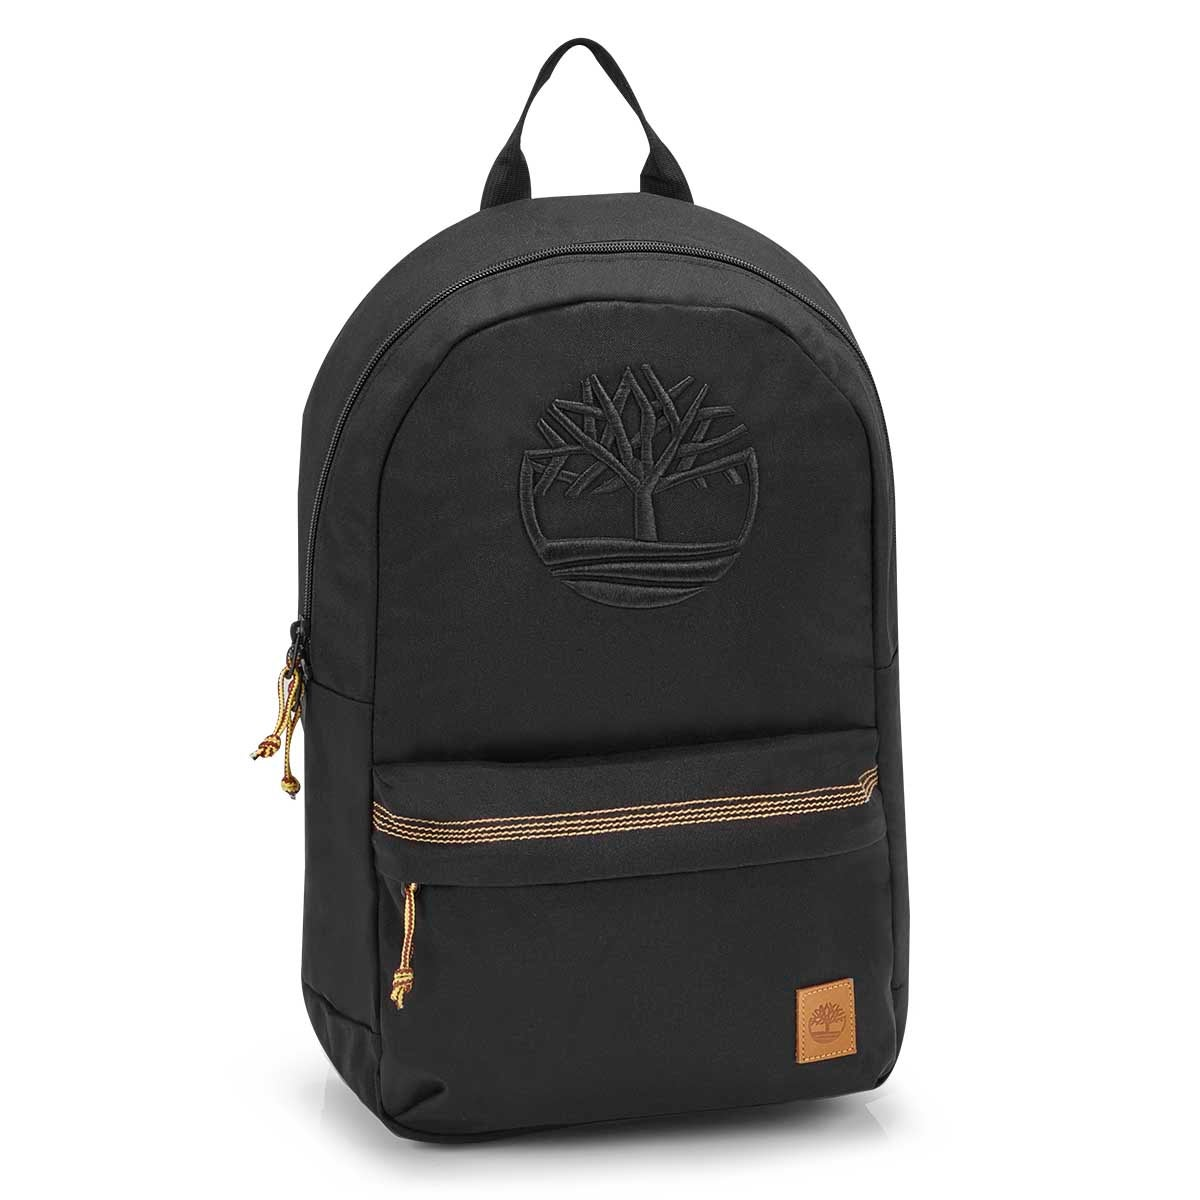 Unisex MENDUM POND black backpack